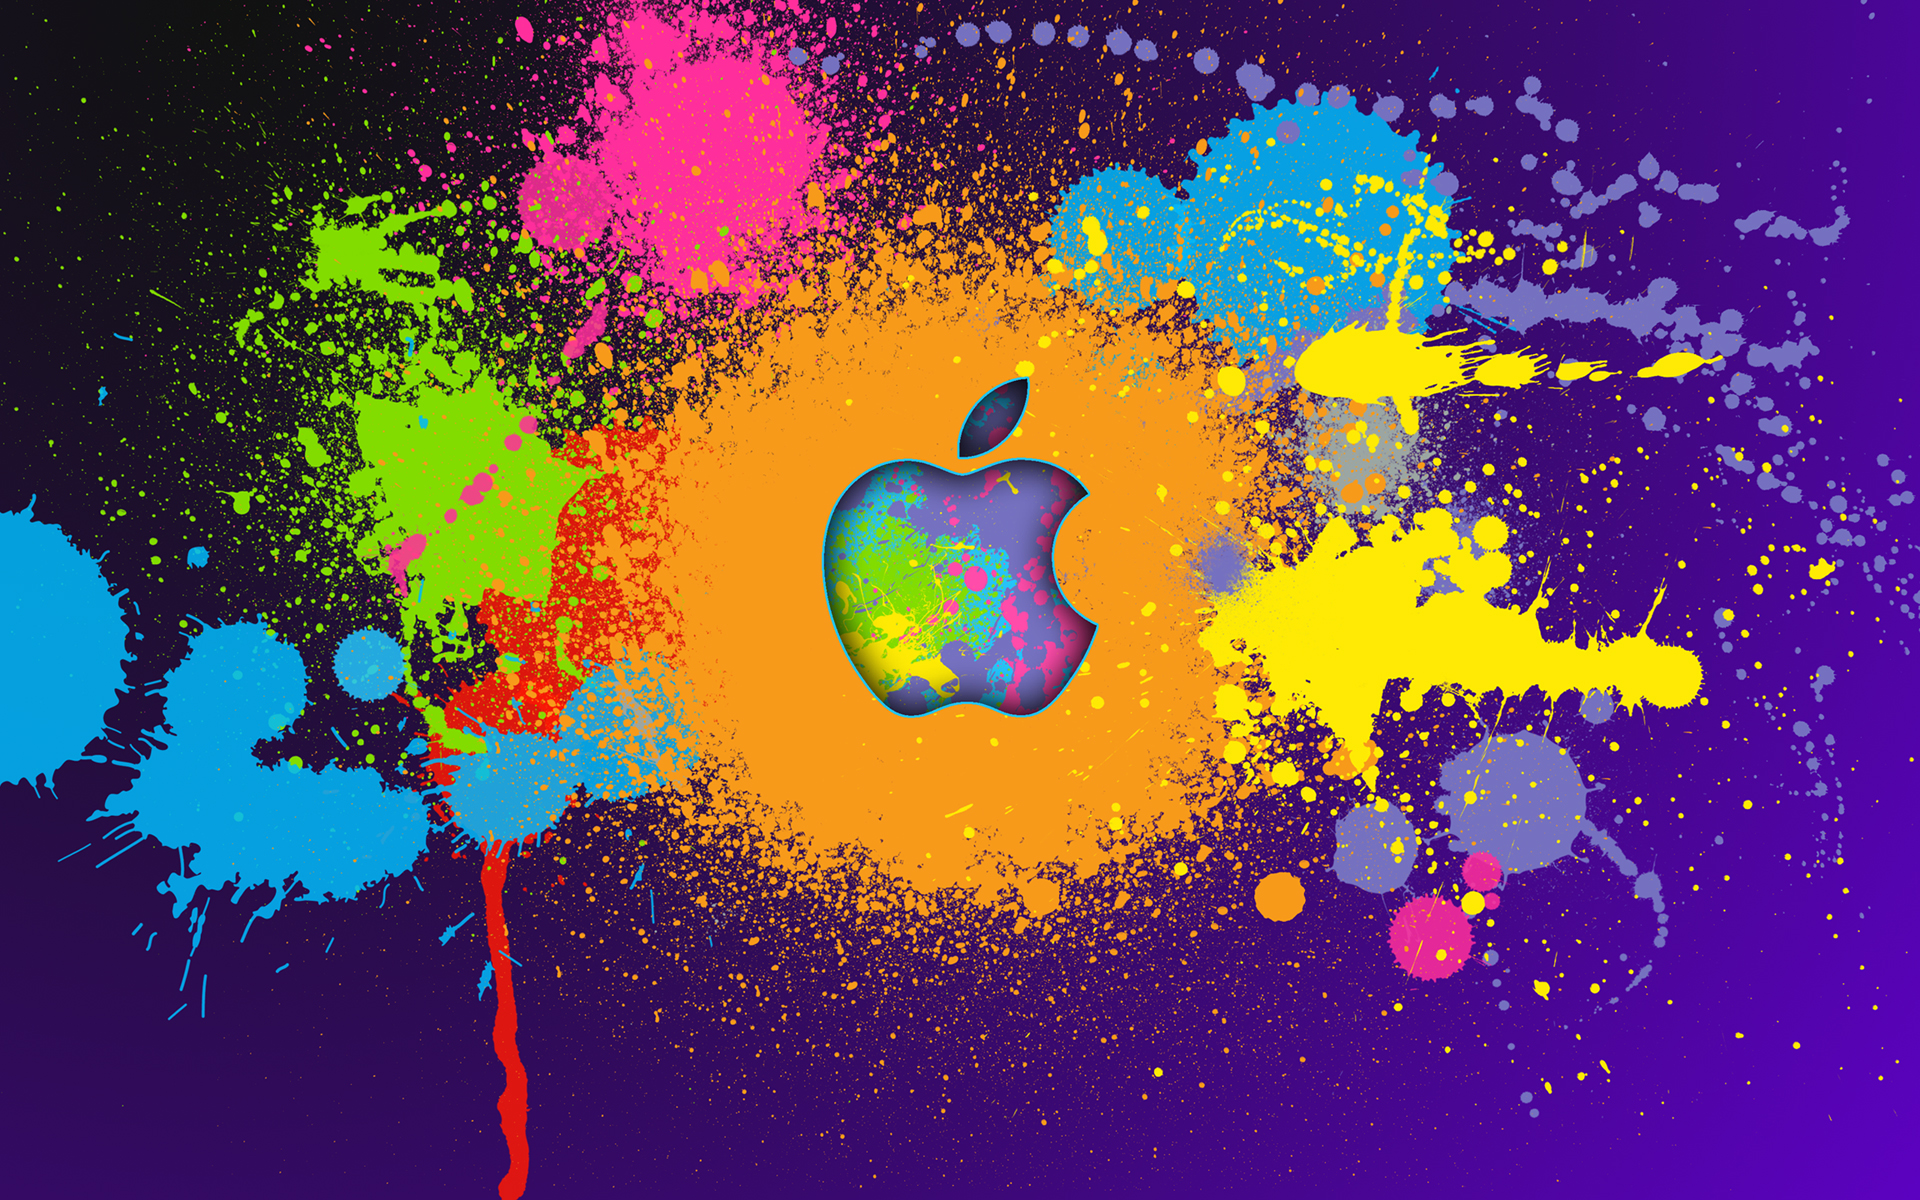 Arte digital y logo de Apple - 1920x1200